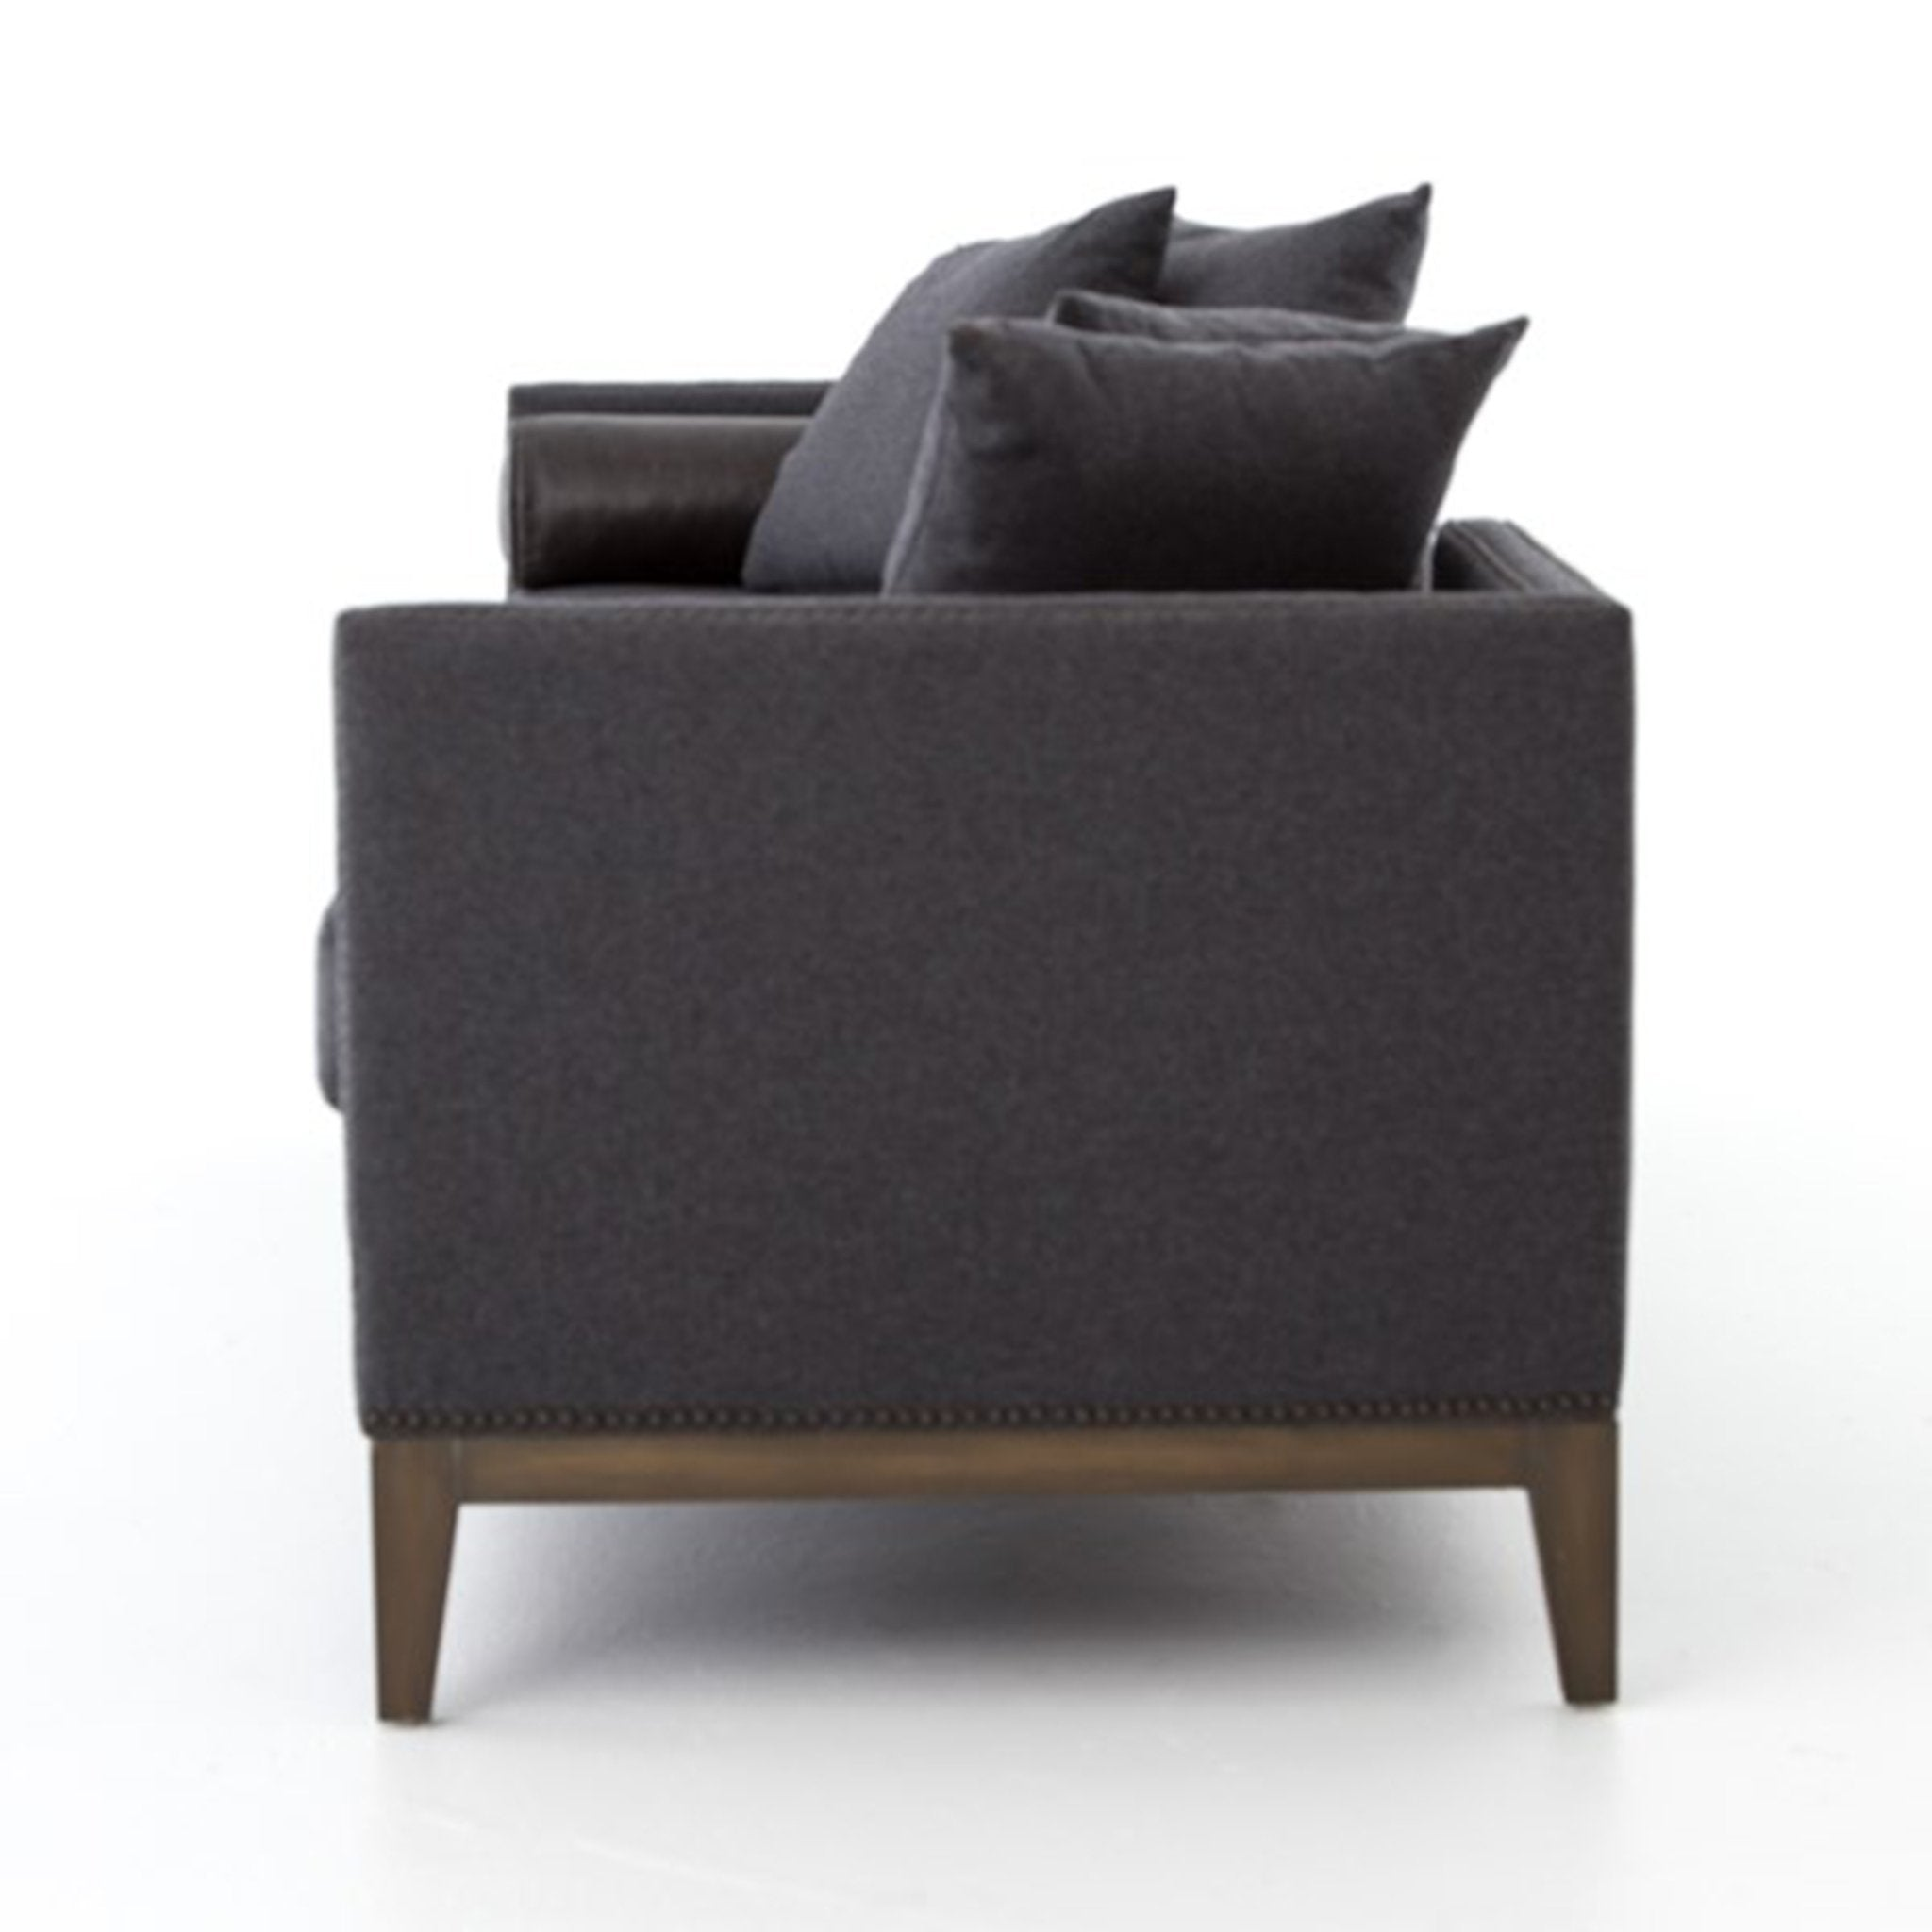 Double Chaise-Charcoal Felt Daybed - Furniture on Main